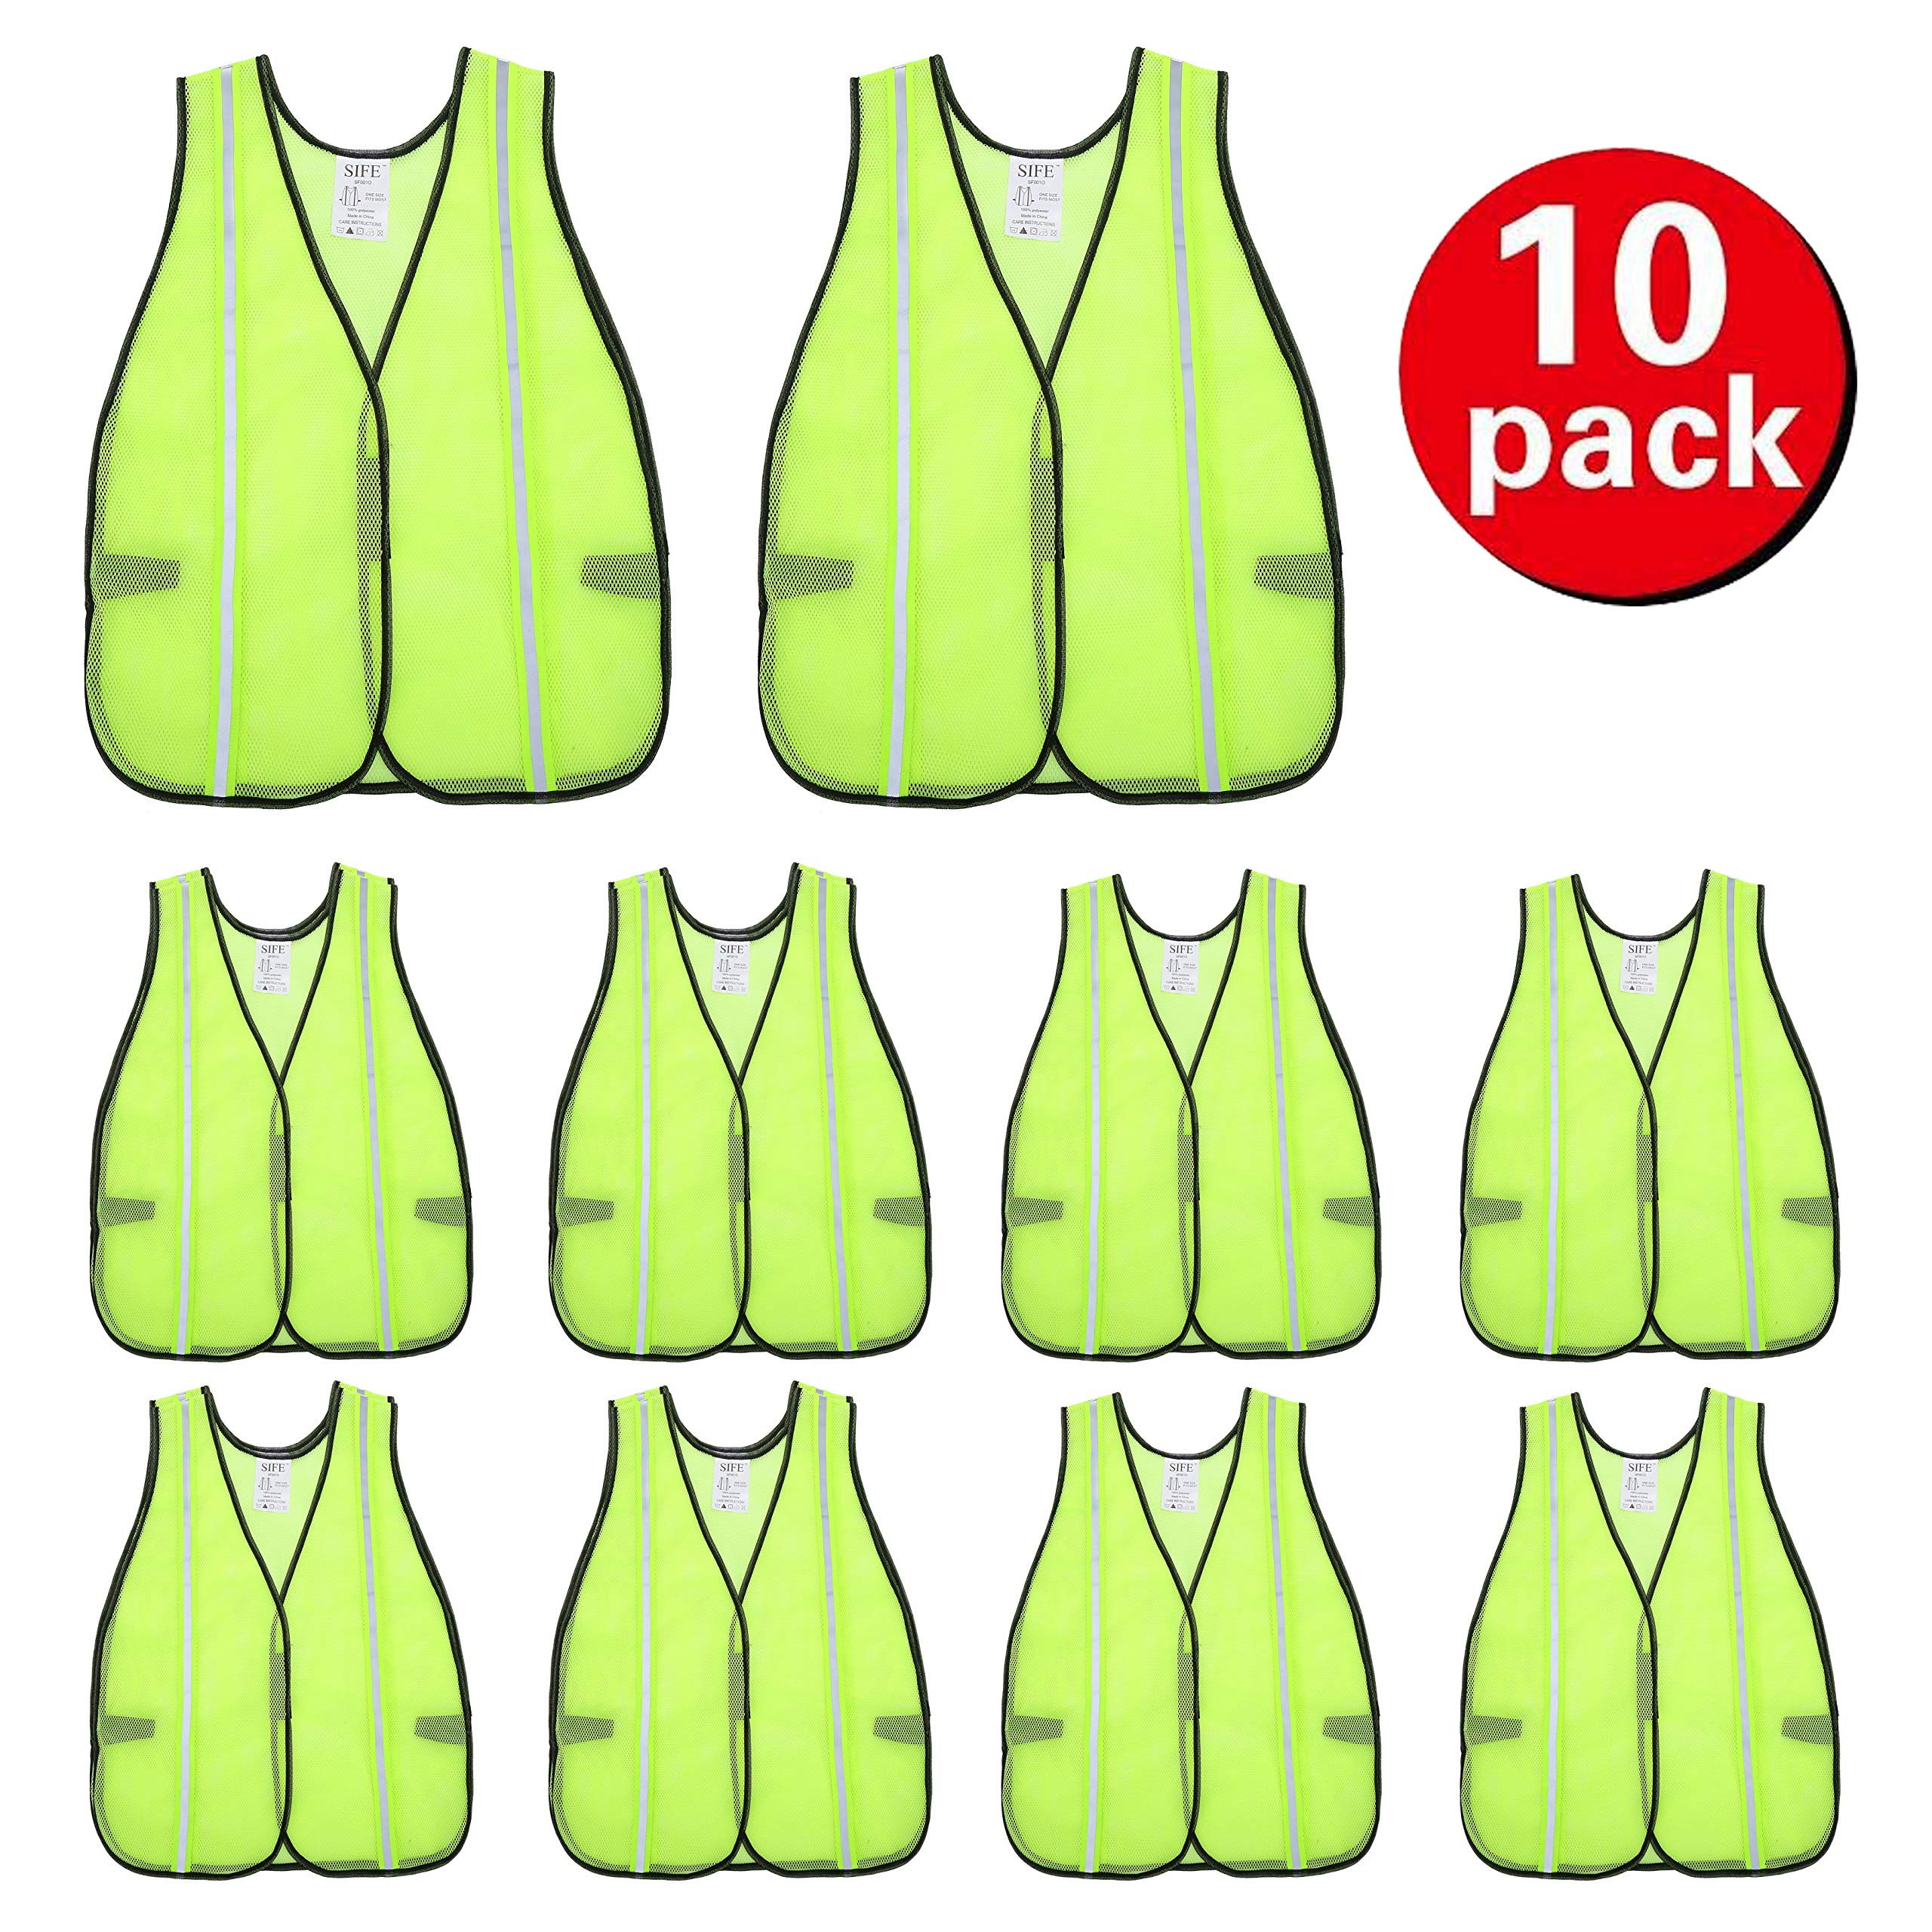 SIFE High Visibility Reflective Safety Vest with 1 Inch Reflective Strips,Made from Breathable and Neon Yellow Mesh Fabric,Universal Size,10 pack